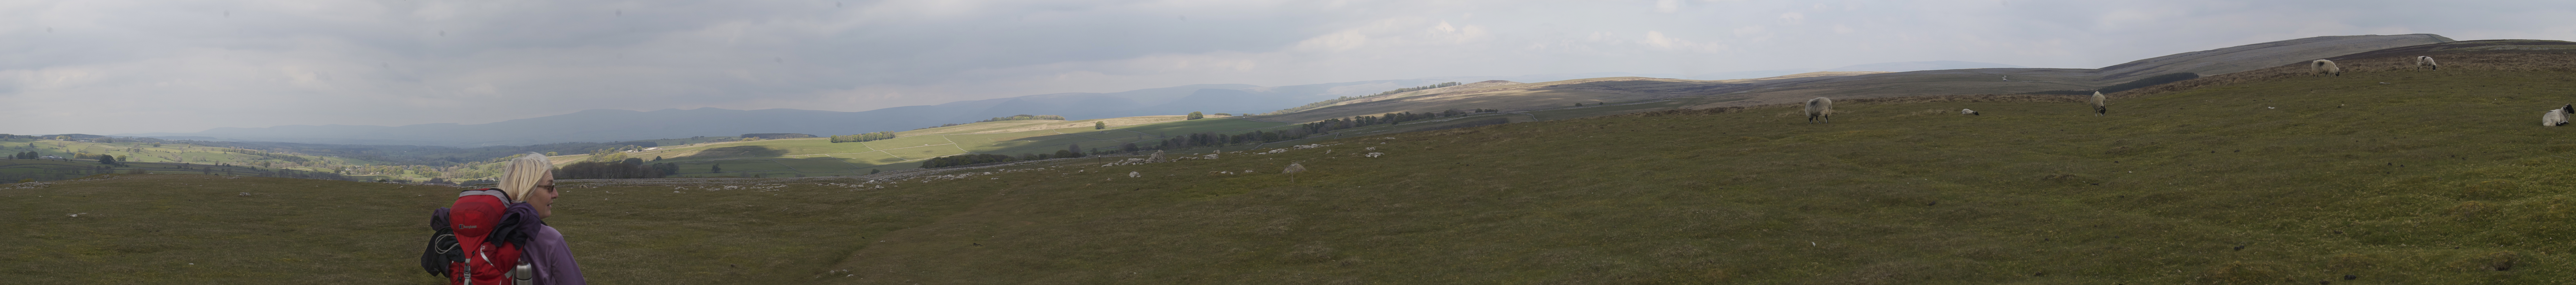 Great Ashby Scar and Pennines from NY 62015 11081